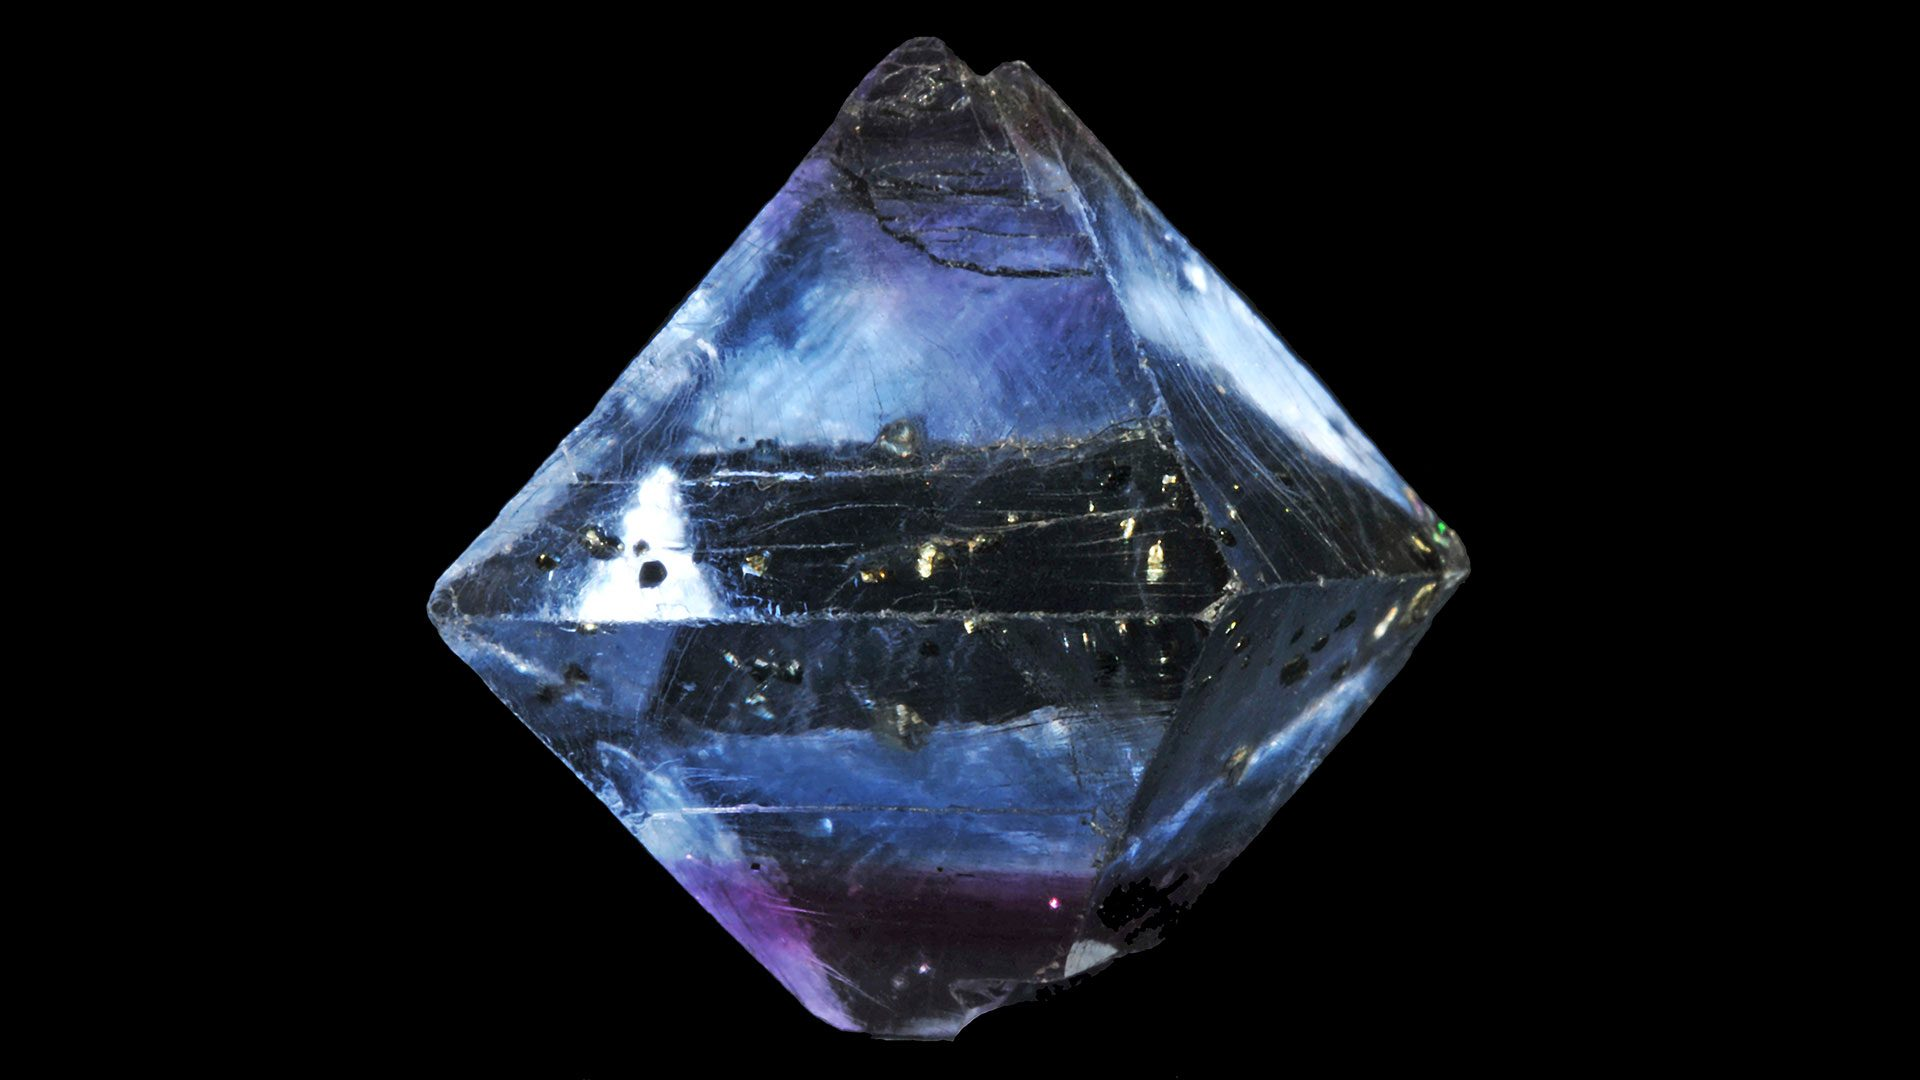 Fluorite Octahedron Crystal Specimen - Photograph by Parent Géry